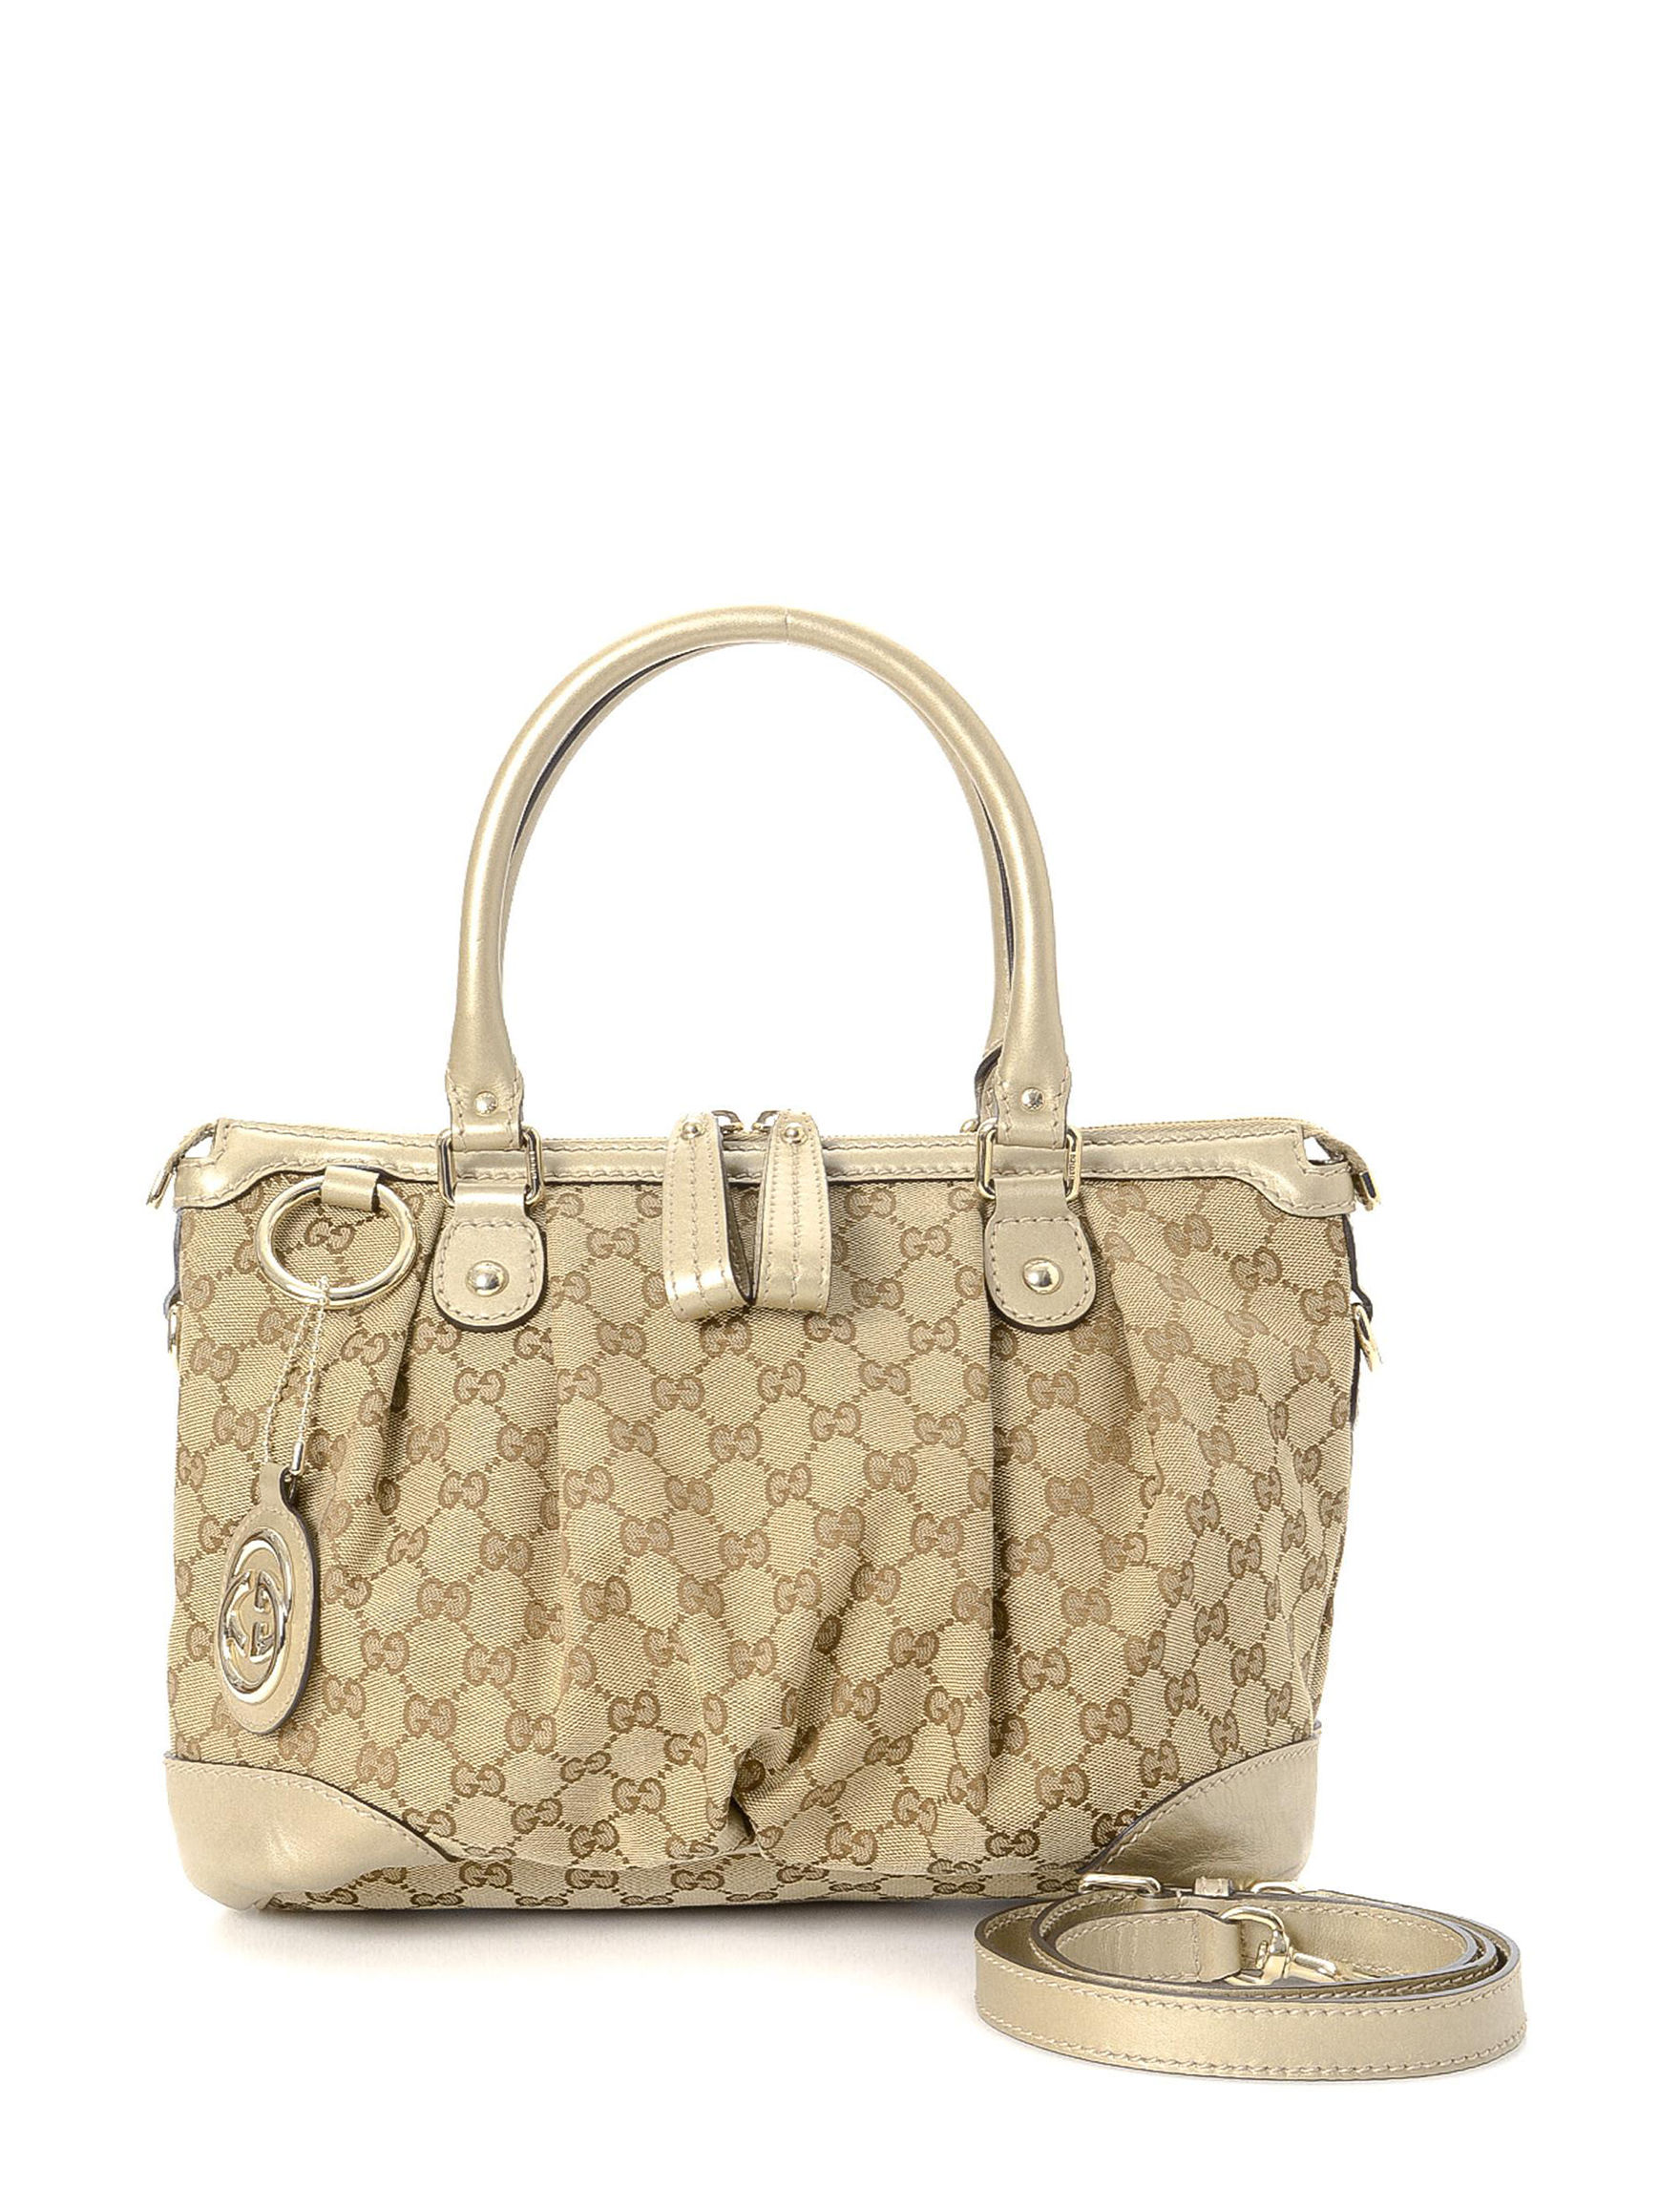 a7d863b0d7e Luxury Pre-Owned Gucci GG Canvas Sukey Two Way Handbag - FINAL SALE